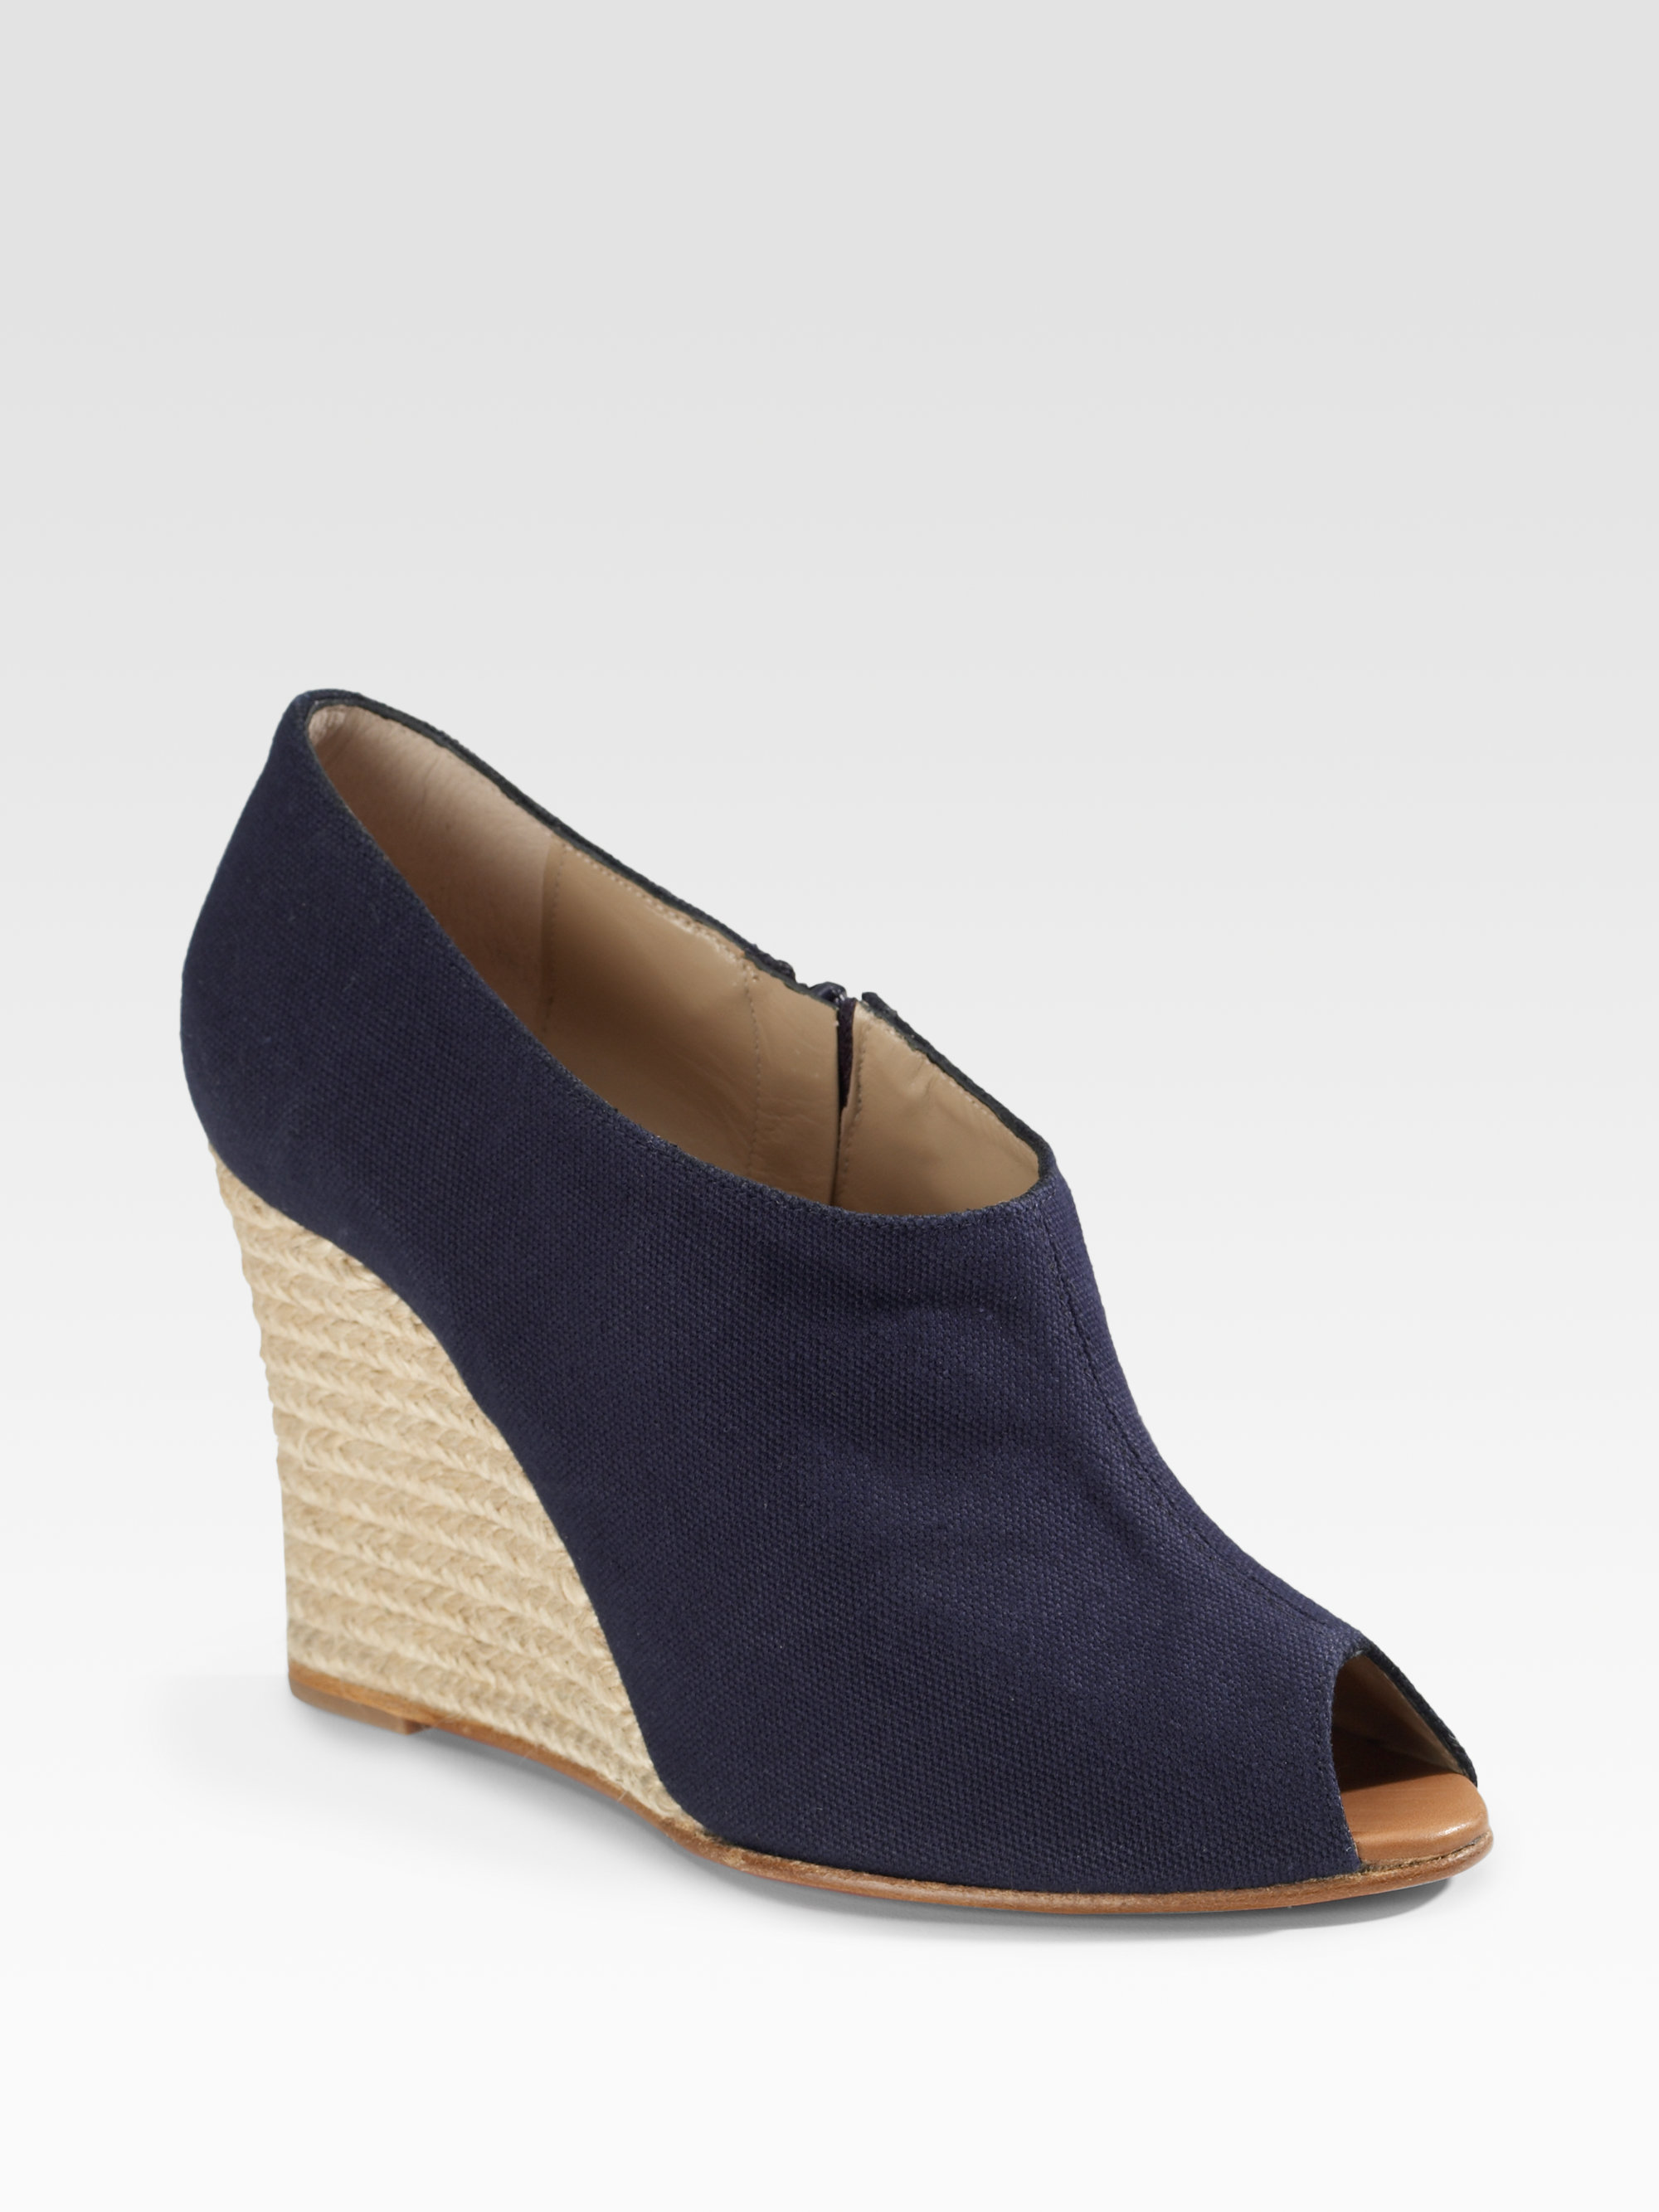 28f1853a3872 Lyst - Christian Louboutin Corazon Covered Wedge Espadrilles in Blue